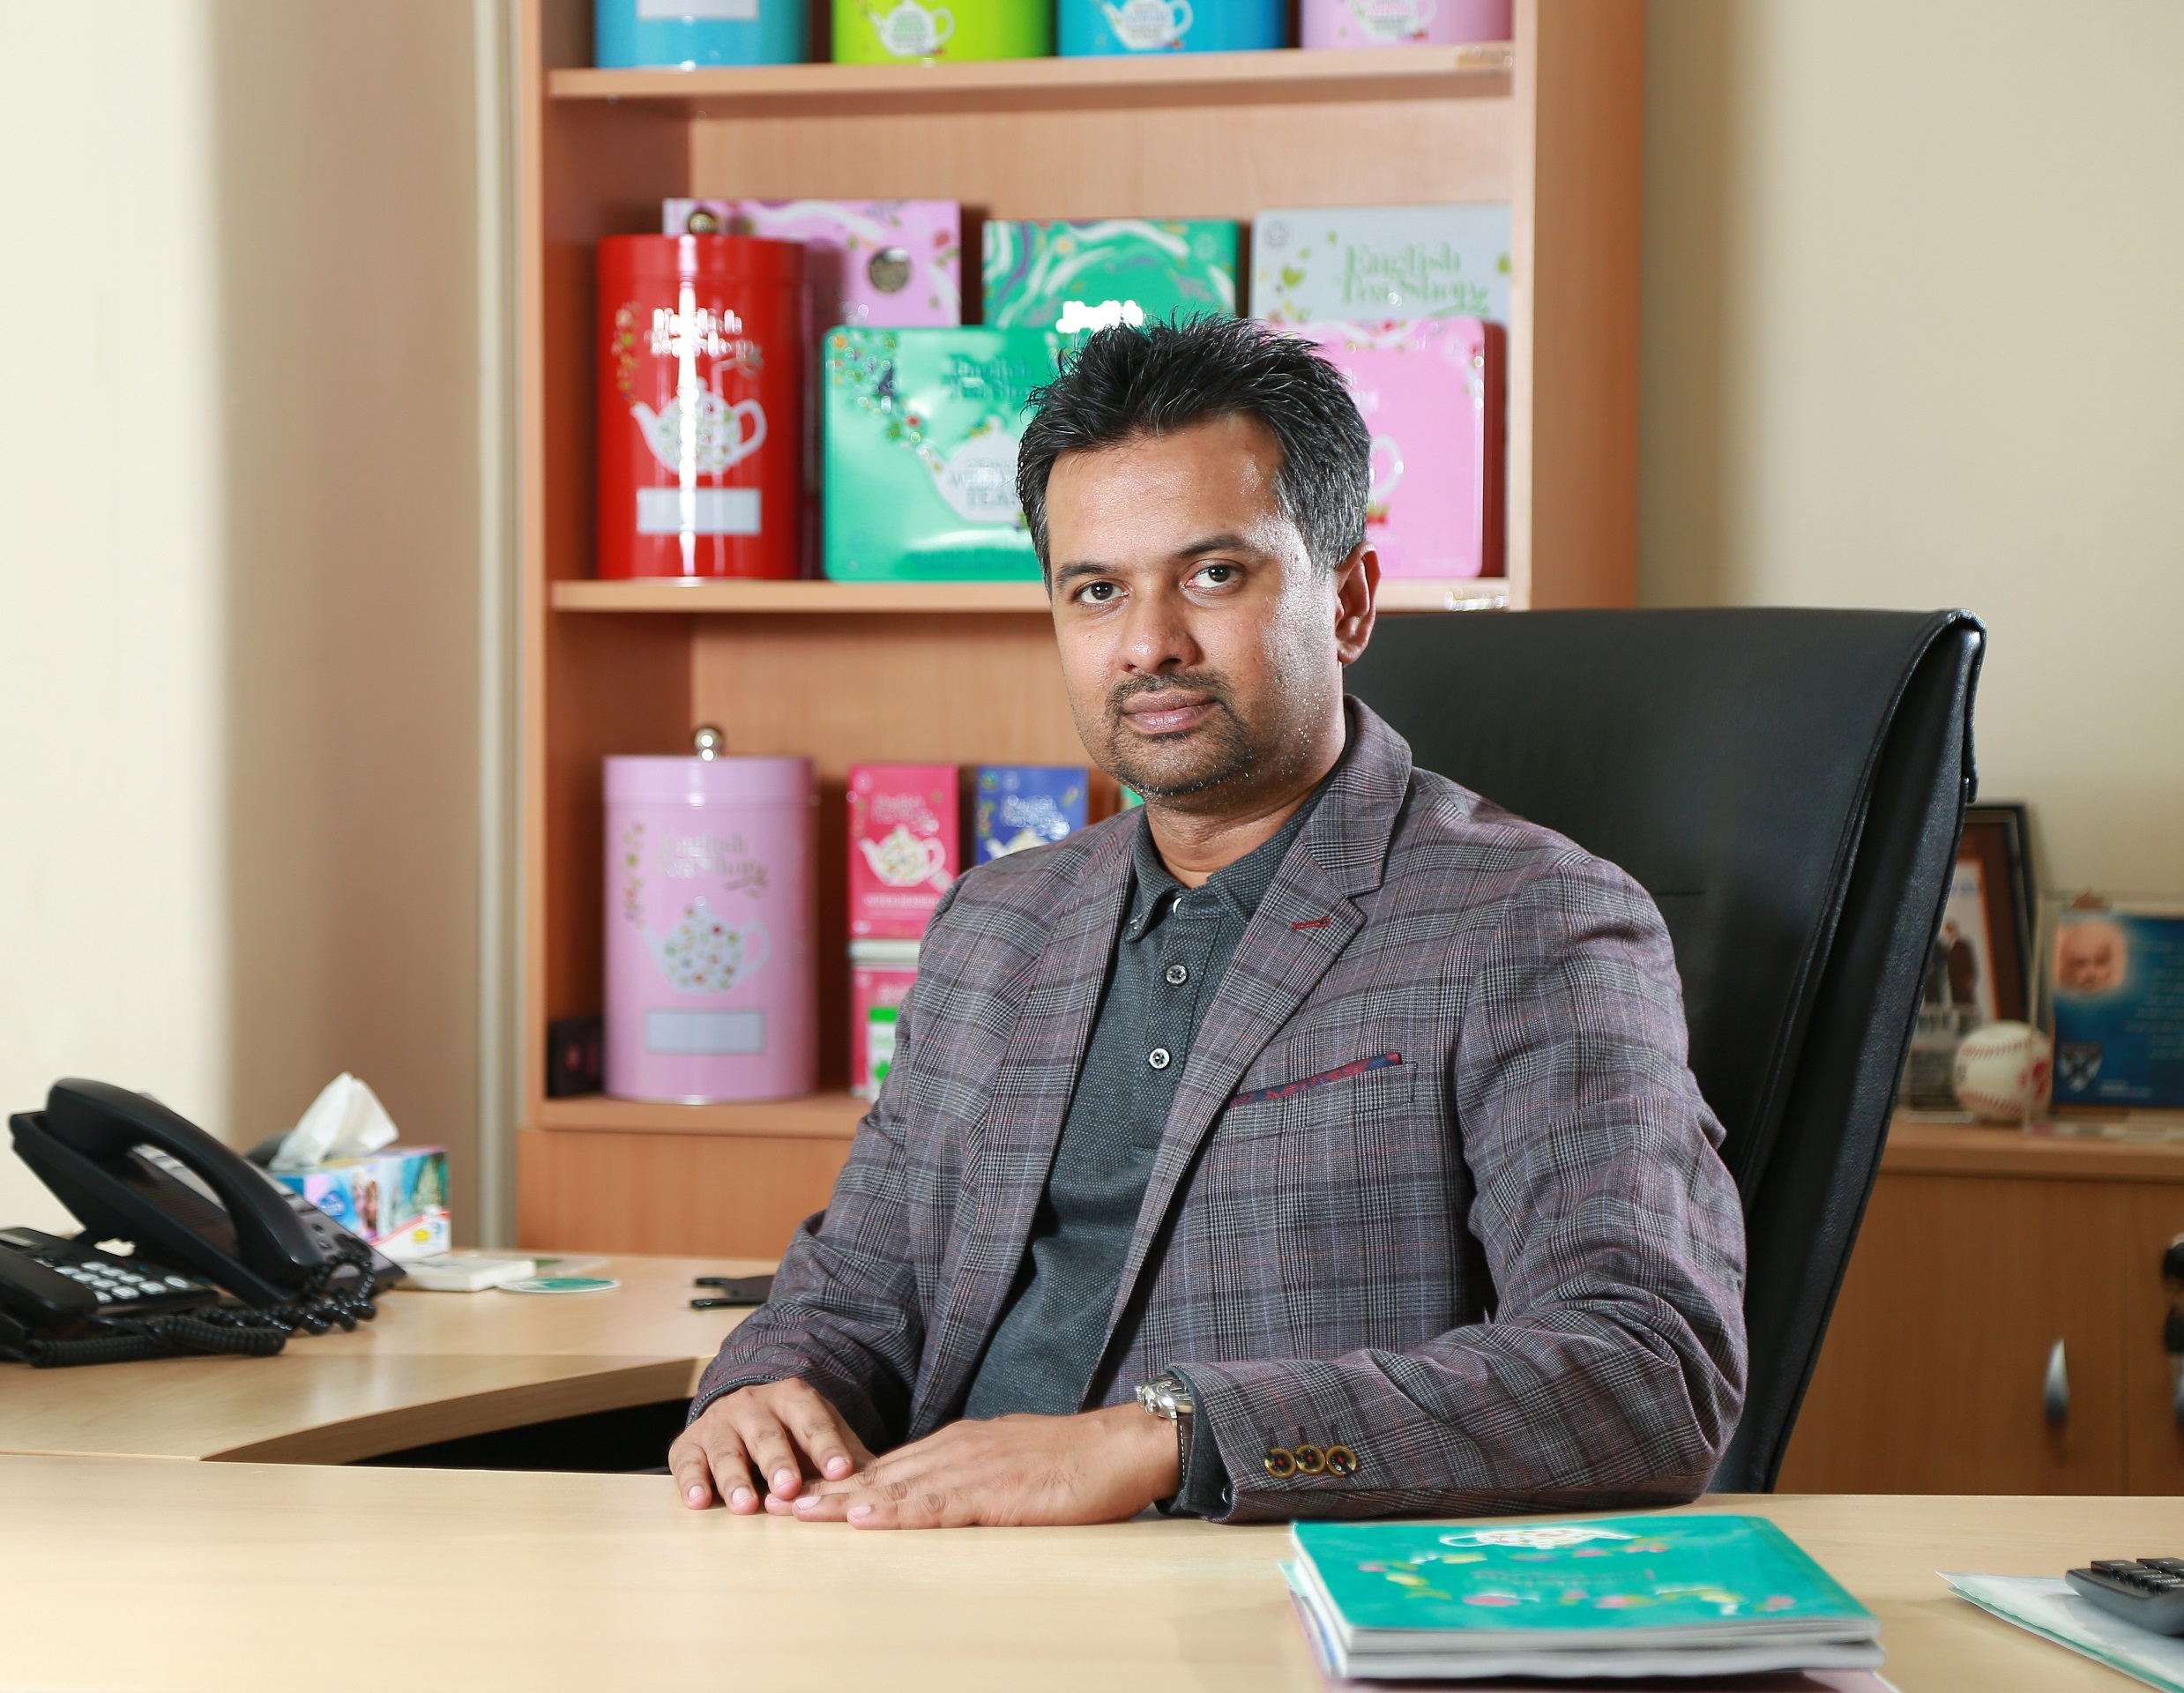 Founders Diaries: English Tea Shop CEO Suranga Herath on the power of creating shared value